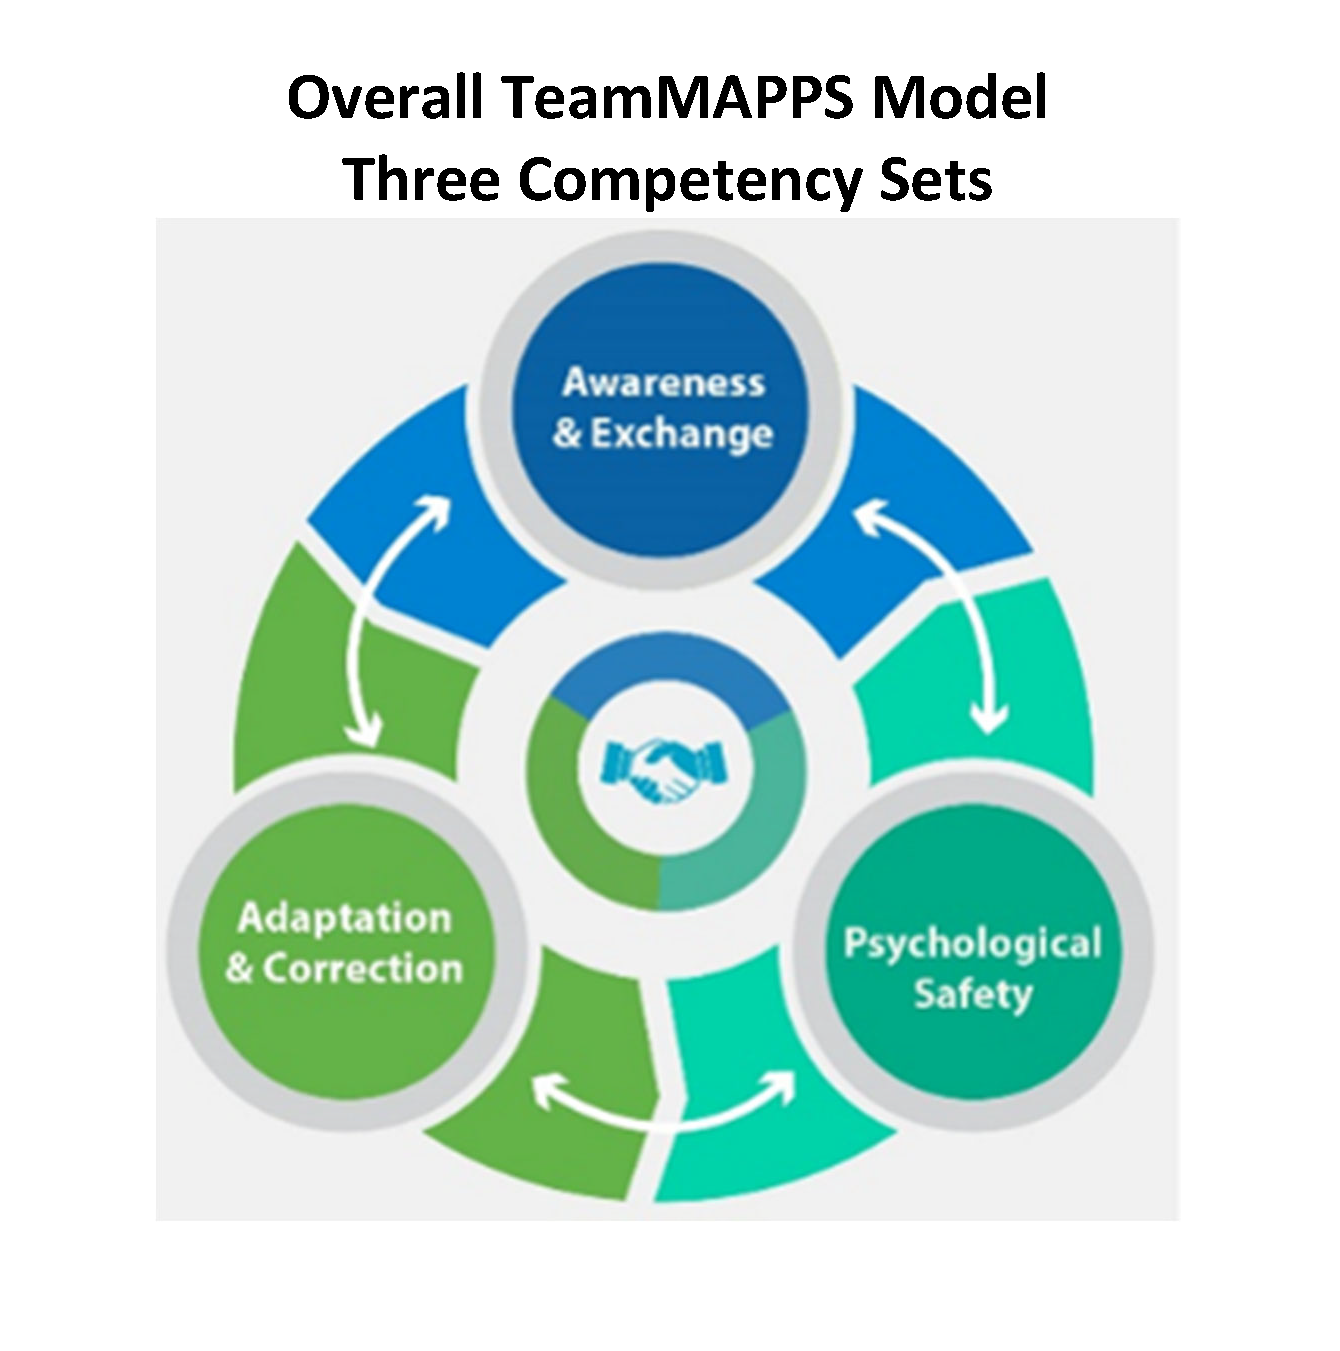 TeamMAPPS Model